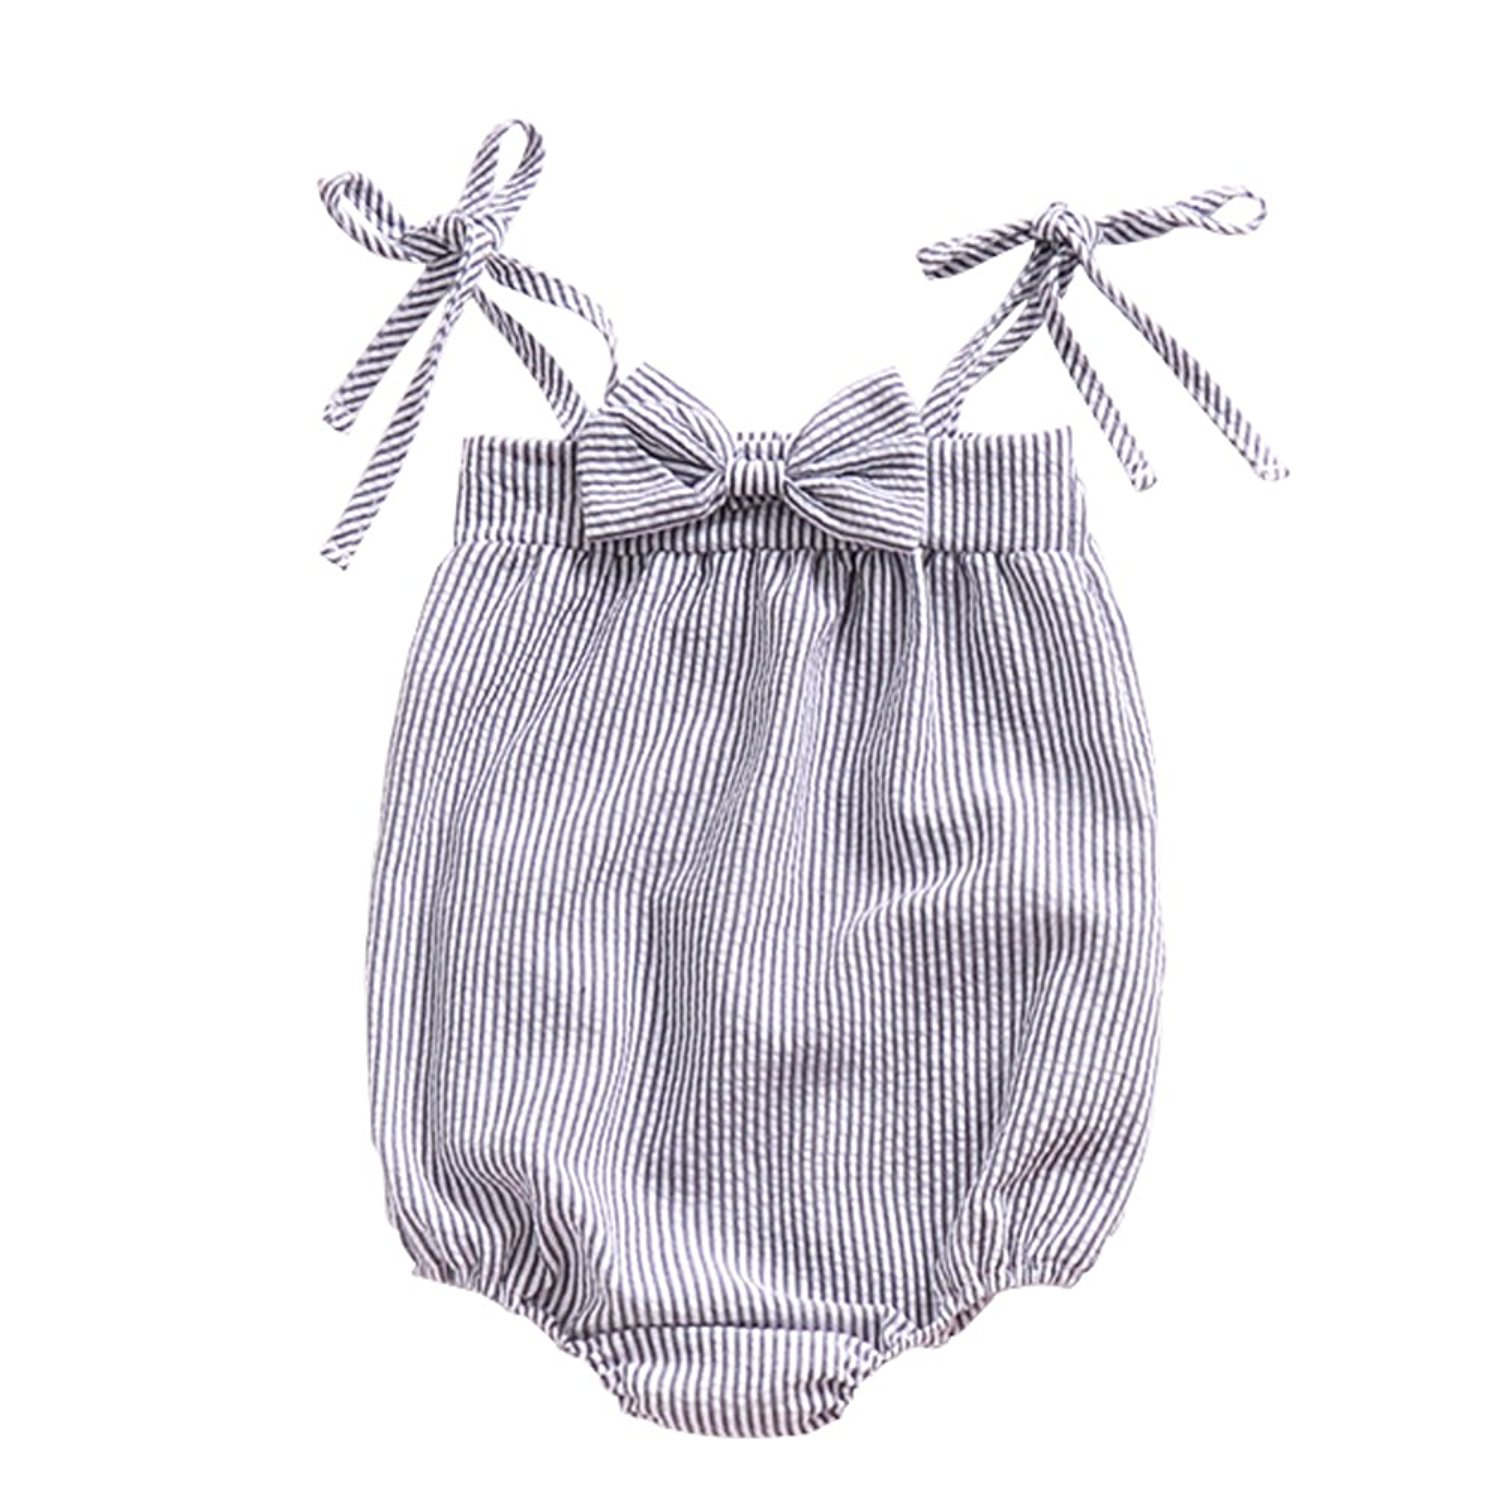 Ding Dong Baby Girl Summer Striped Romper - Adorable Amazon Outfits for Baby Girls and Toddlers by popular North Carolina style blogger, Glitter, Inc.